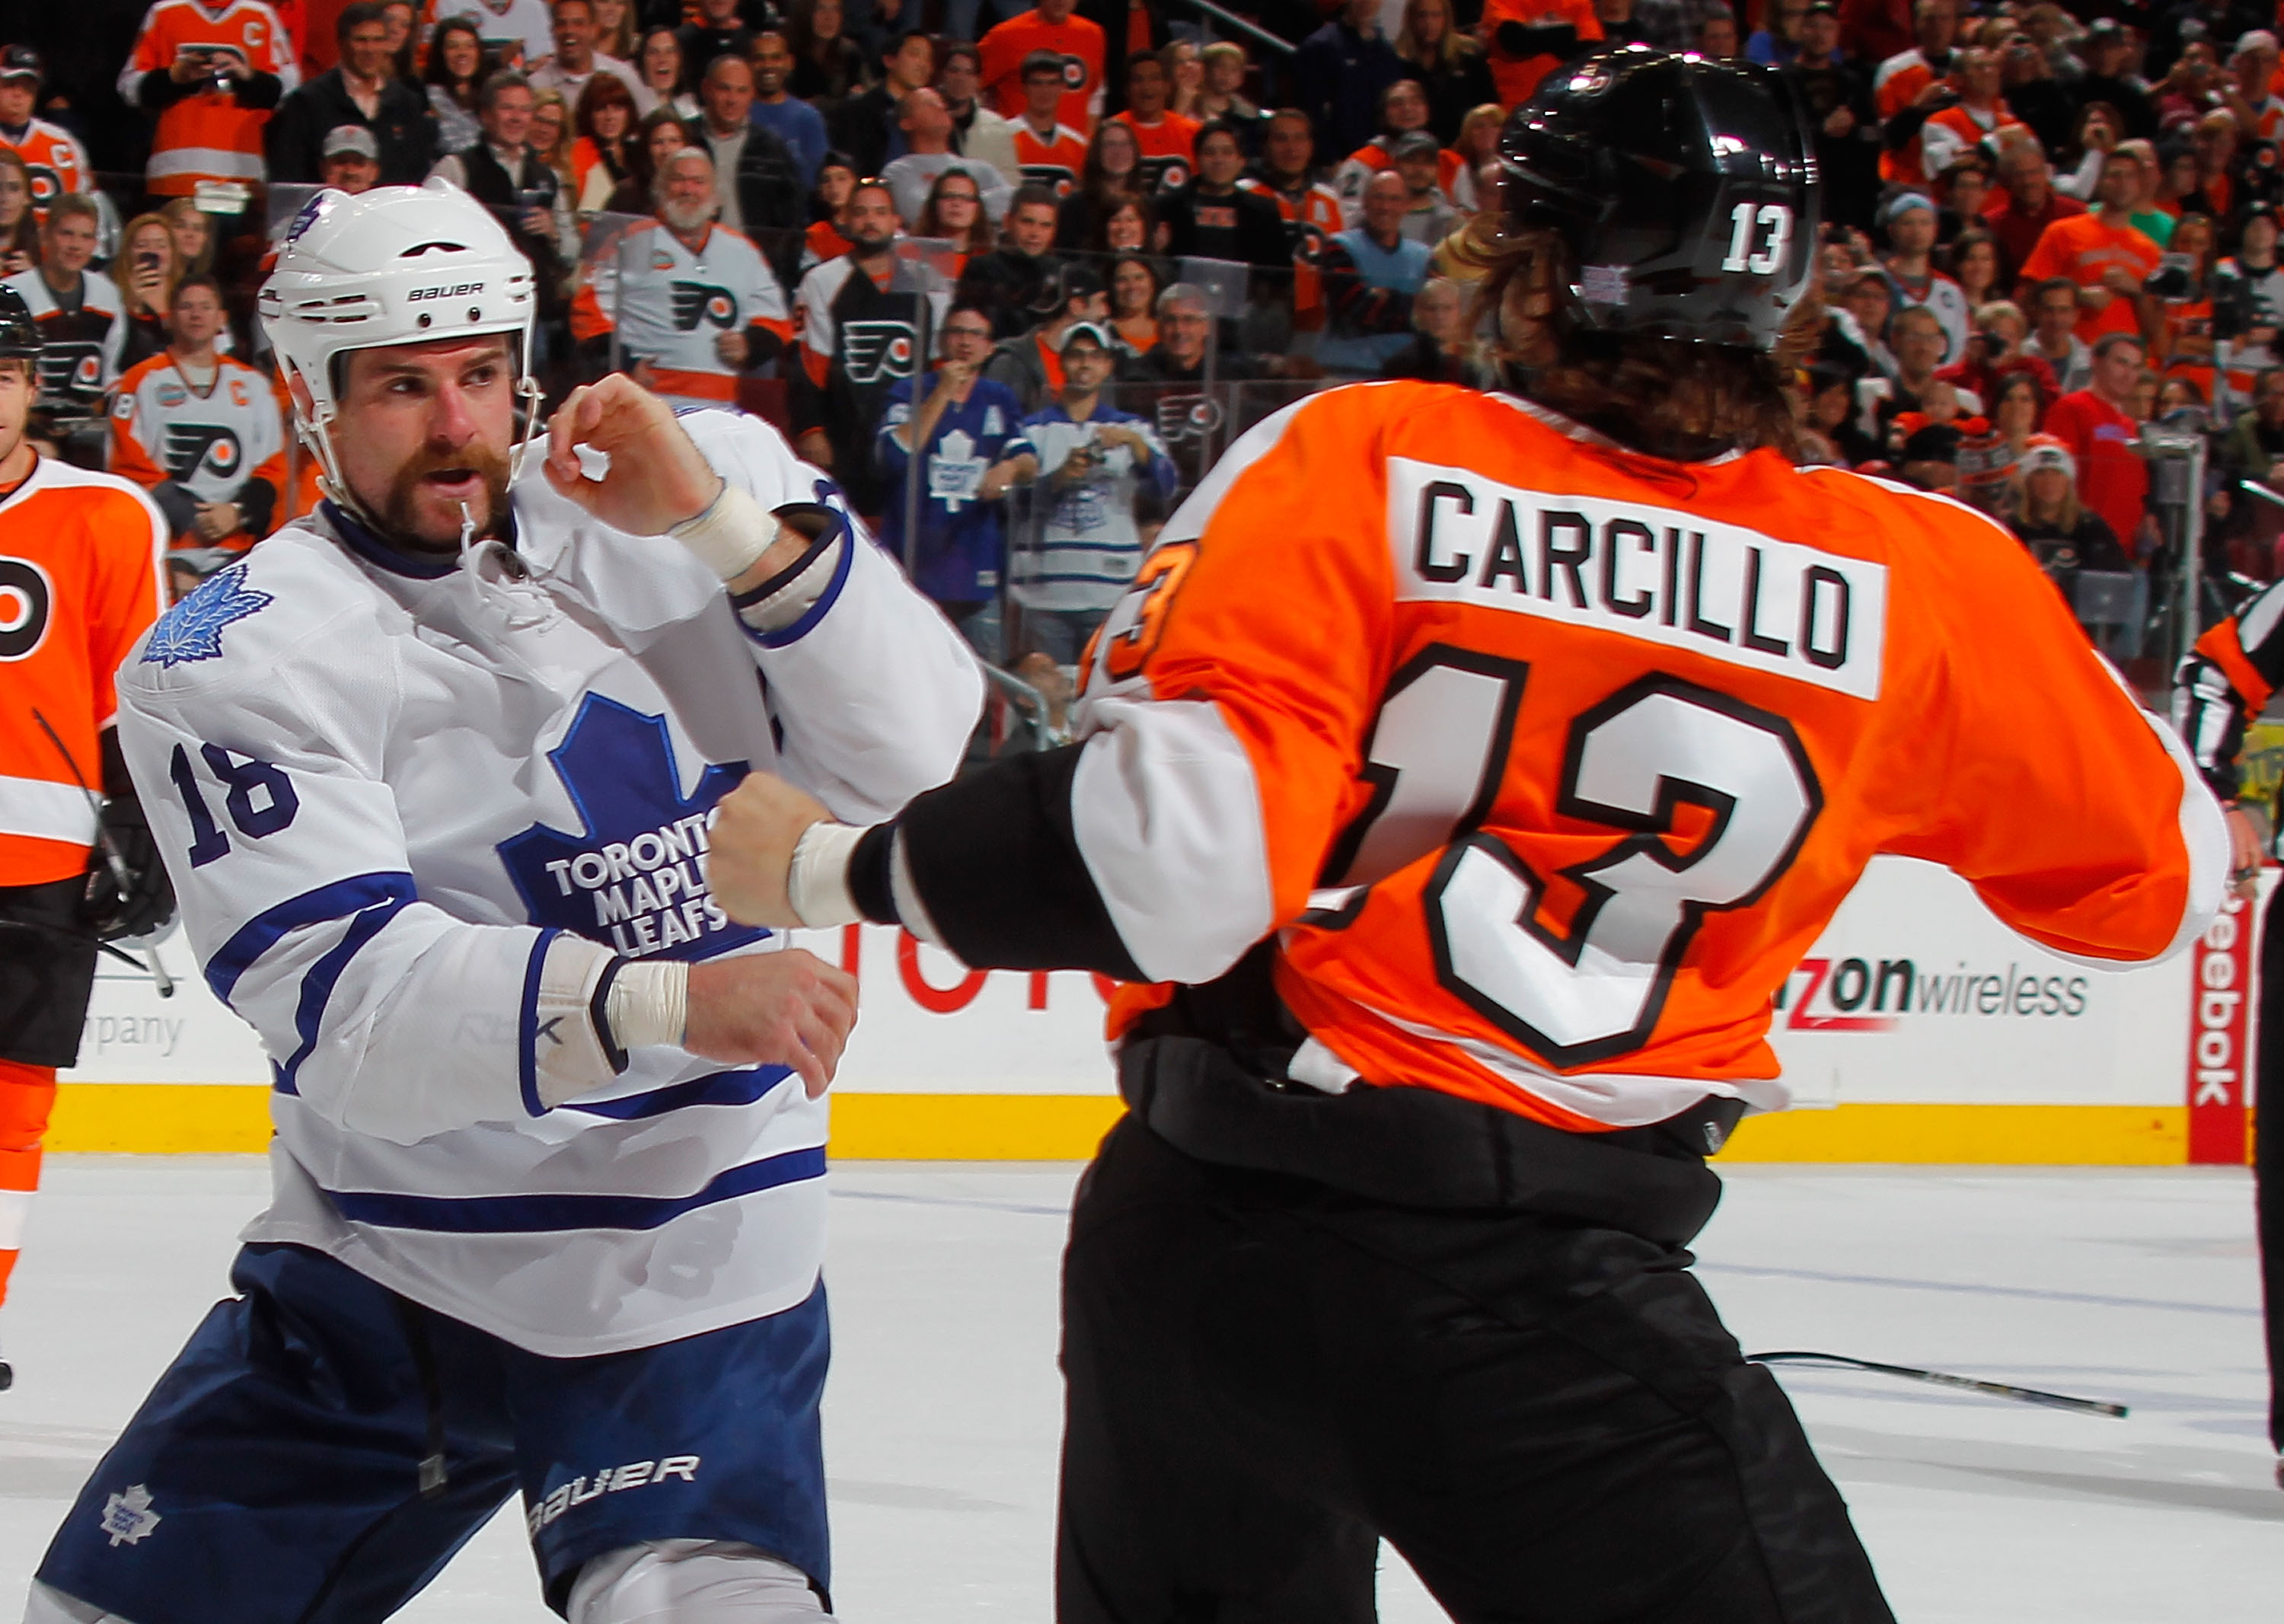 PHILADELPHIA - OCTOBER 23  Mike Brown  18 of the Toronto Maple Leafs fights  with e847cc2a5